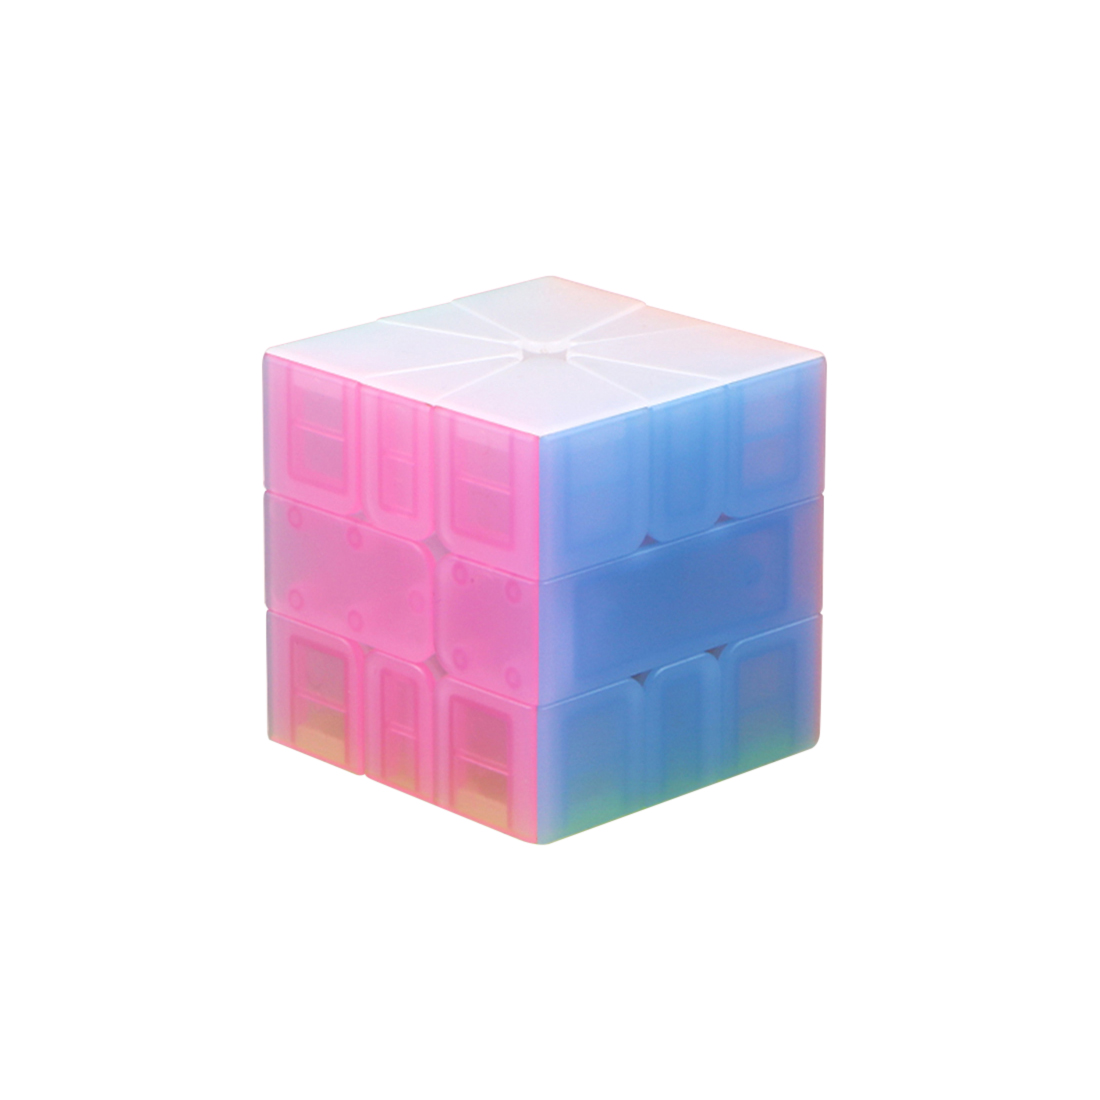 QiYi Jelly Cube Set Including Pyramid SQ 1 Mastermorphix Qidi S 2x2 Warrior W 3x3 QiYuan S 4x4 Qizheng S 5x5 Magic Cube Kits in Magic Cubes from Toys Hobbies